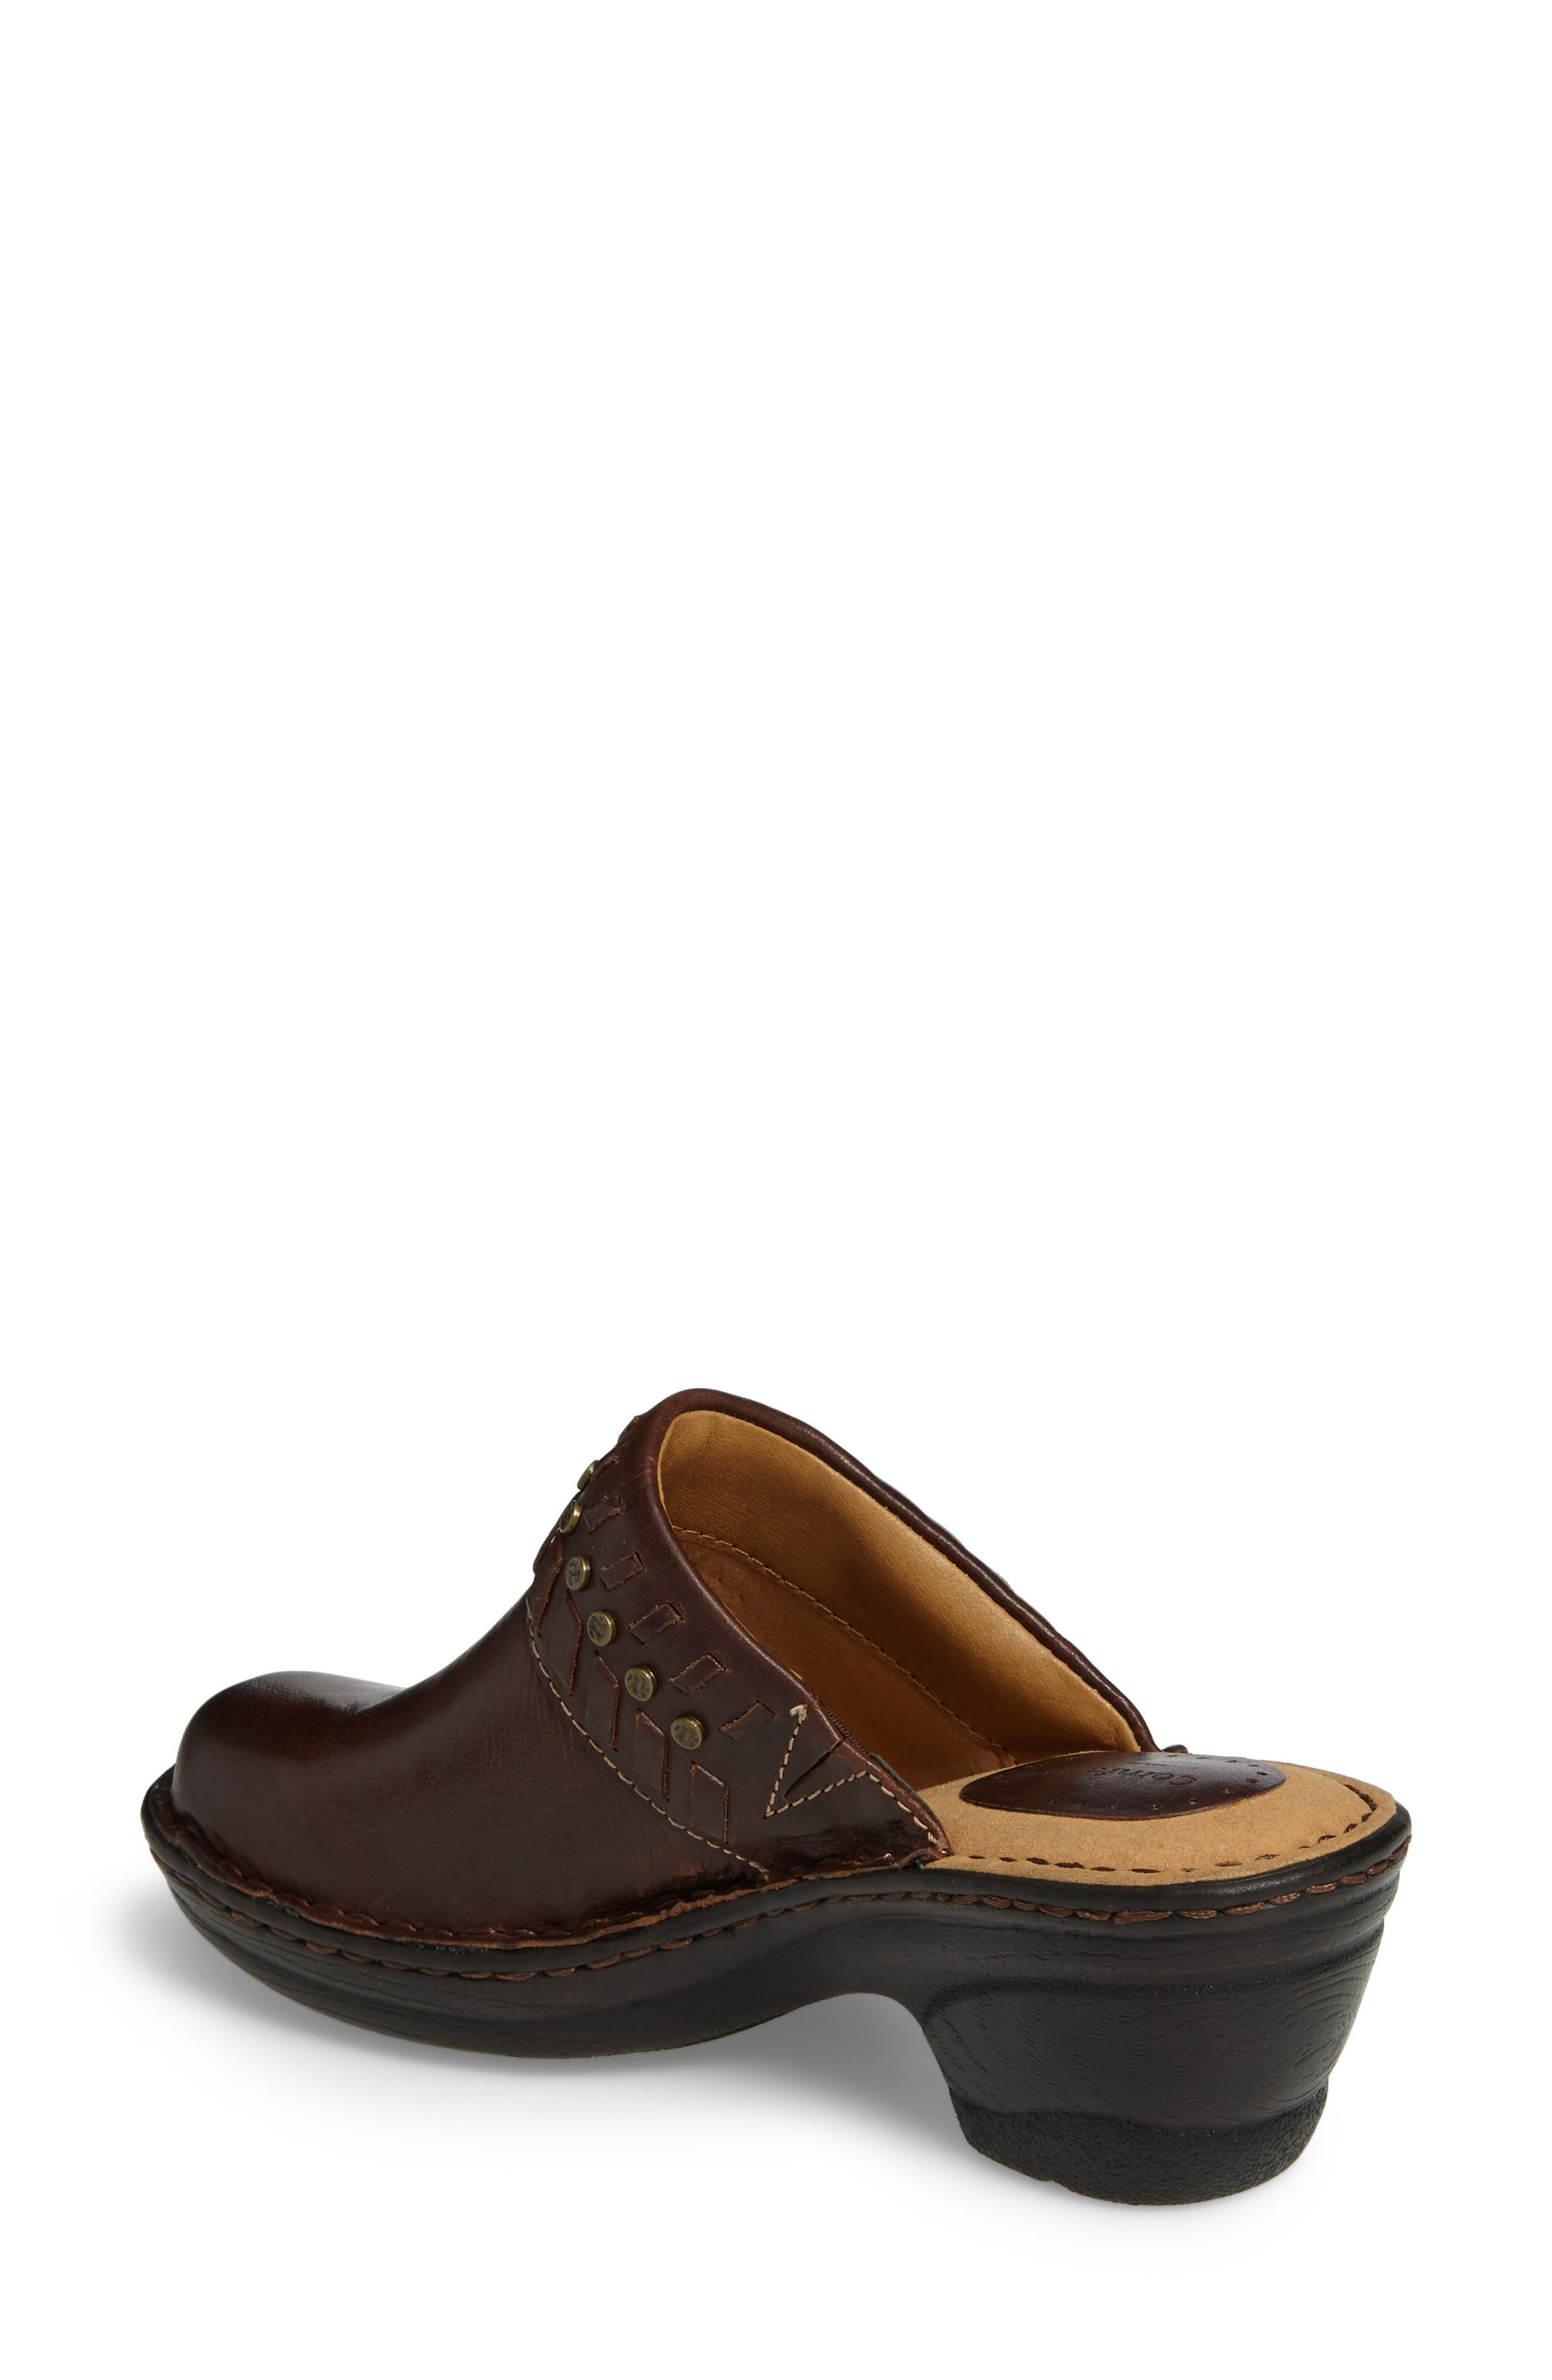 Lorain Clog,                             Alternate thumbnail 2, color,                             Bridle Brown Leather